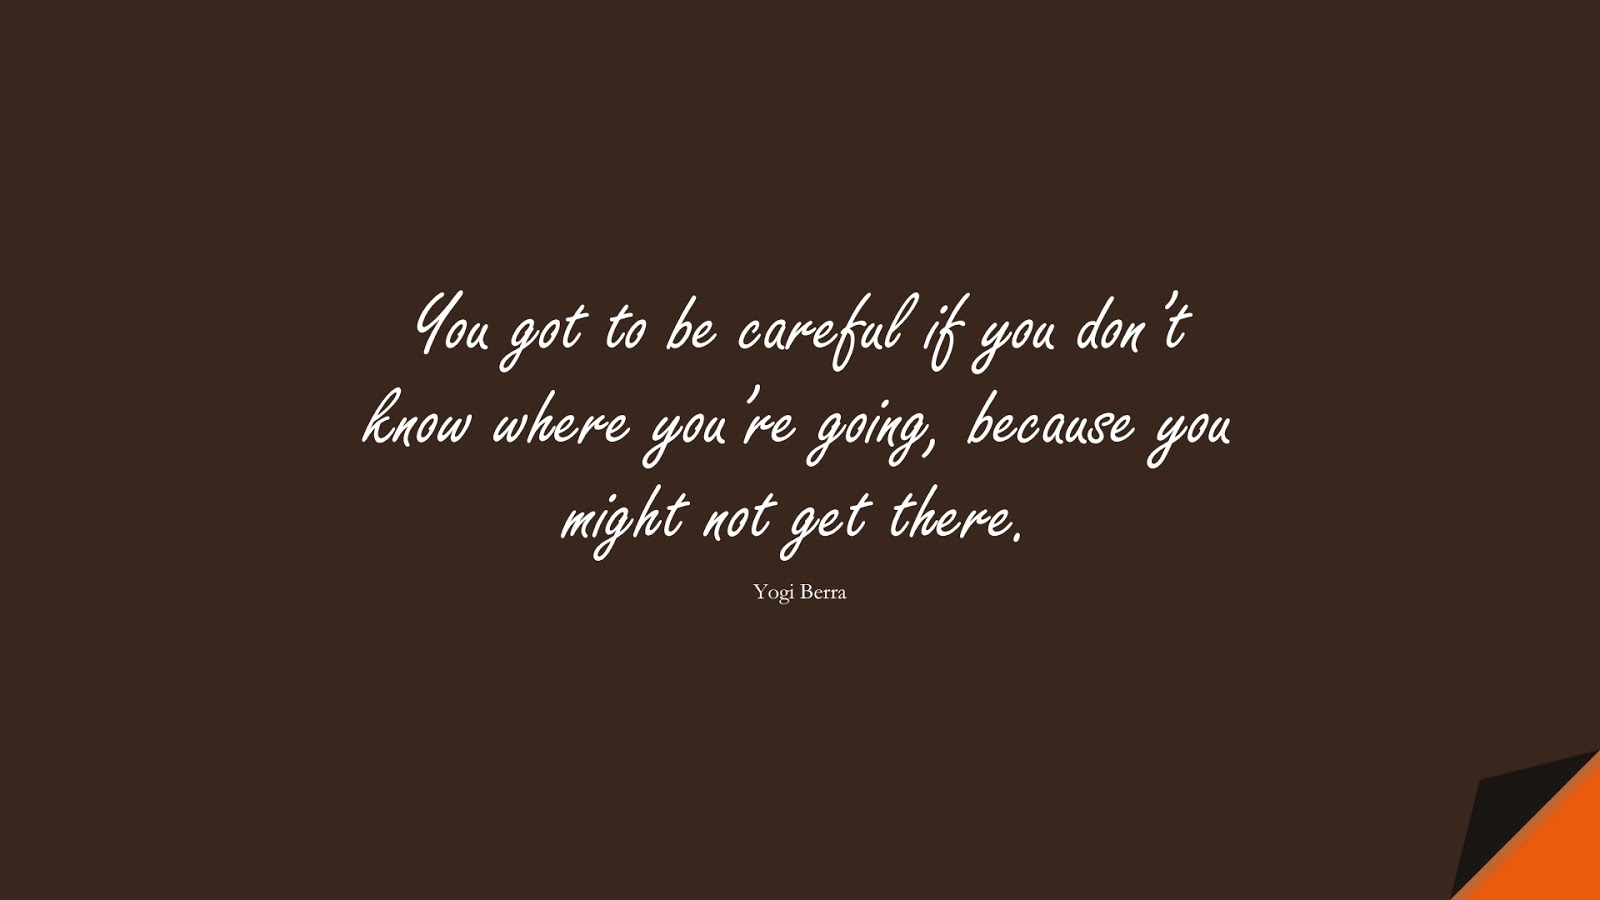 You got to be careful if you don't know where you're going, because you might not get there. (Yogi Berra);  #SuccessQuotes